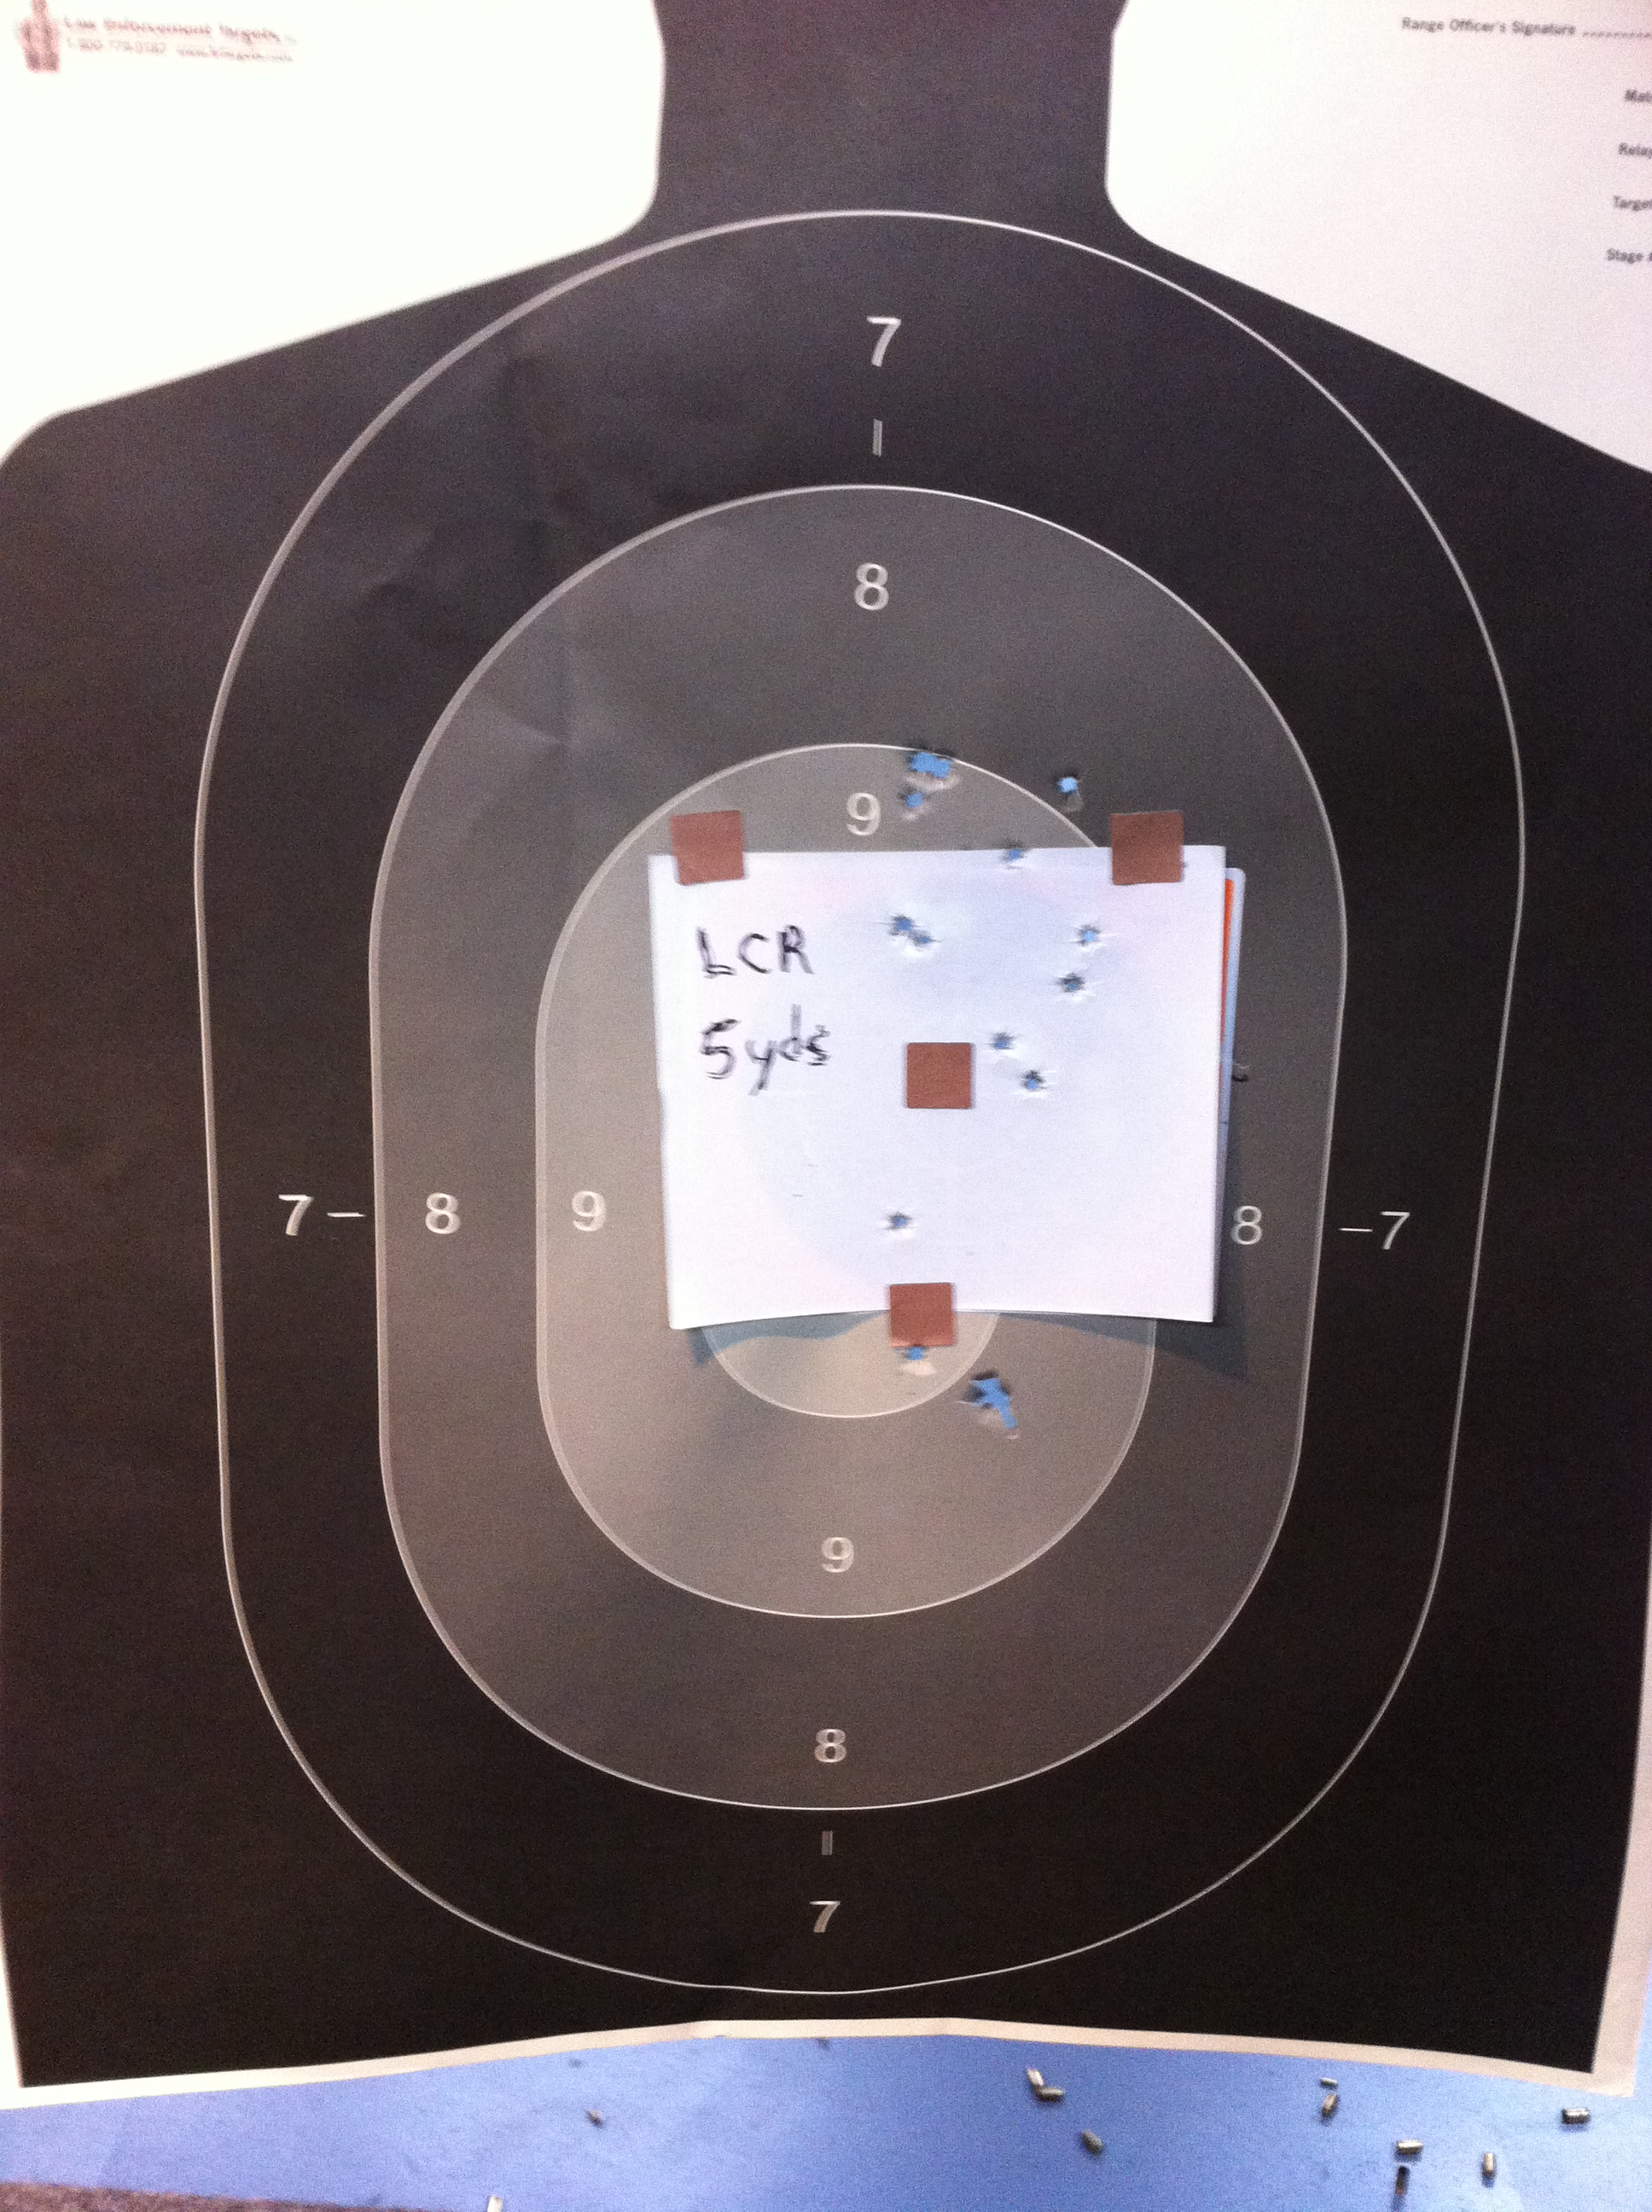 First range trip with a snub nose - new LCR-046.jpg